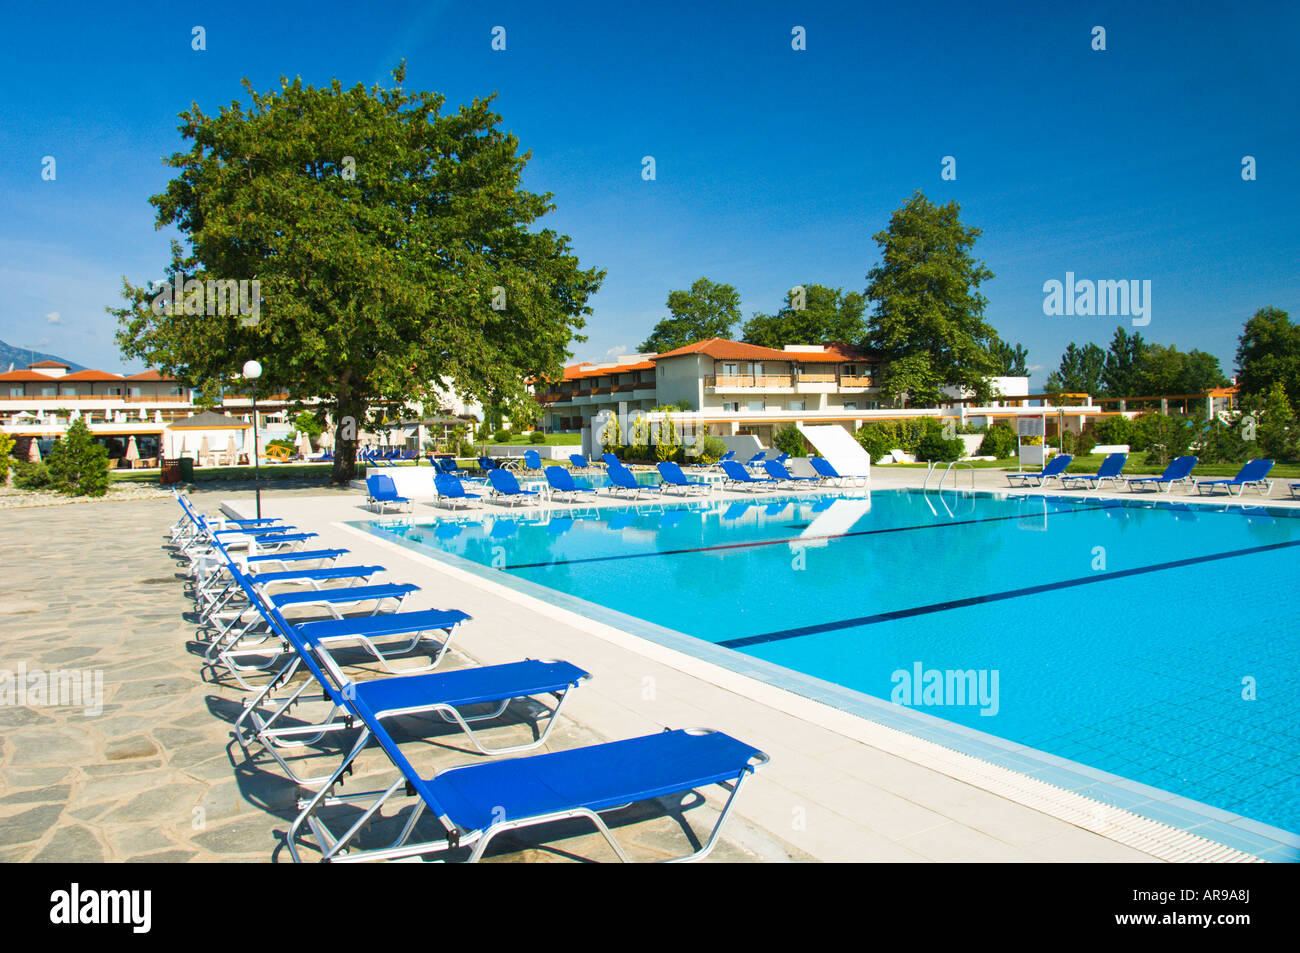 Pool Area With Blue Lounge Chairs At The Dion Palace Resort In Litohor  Greece